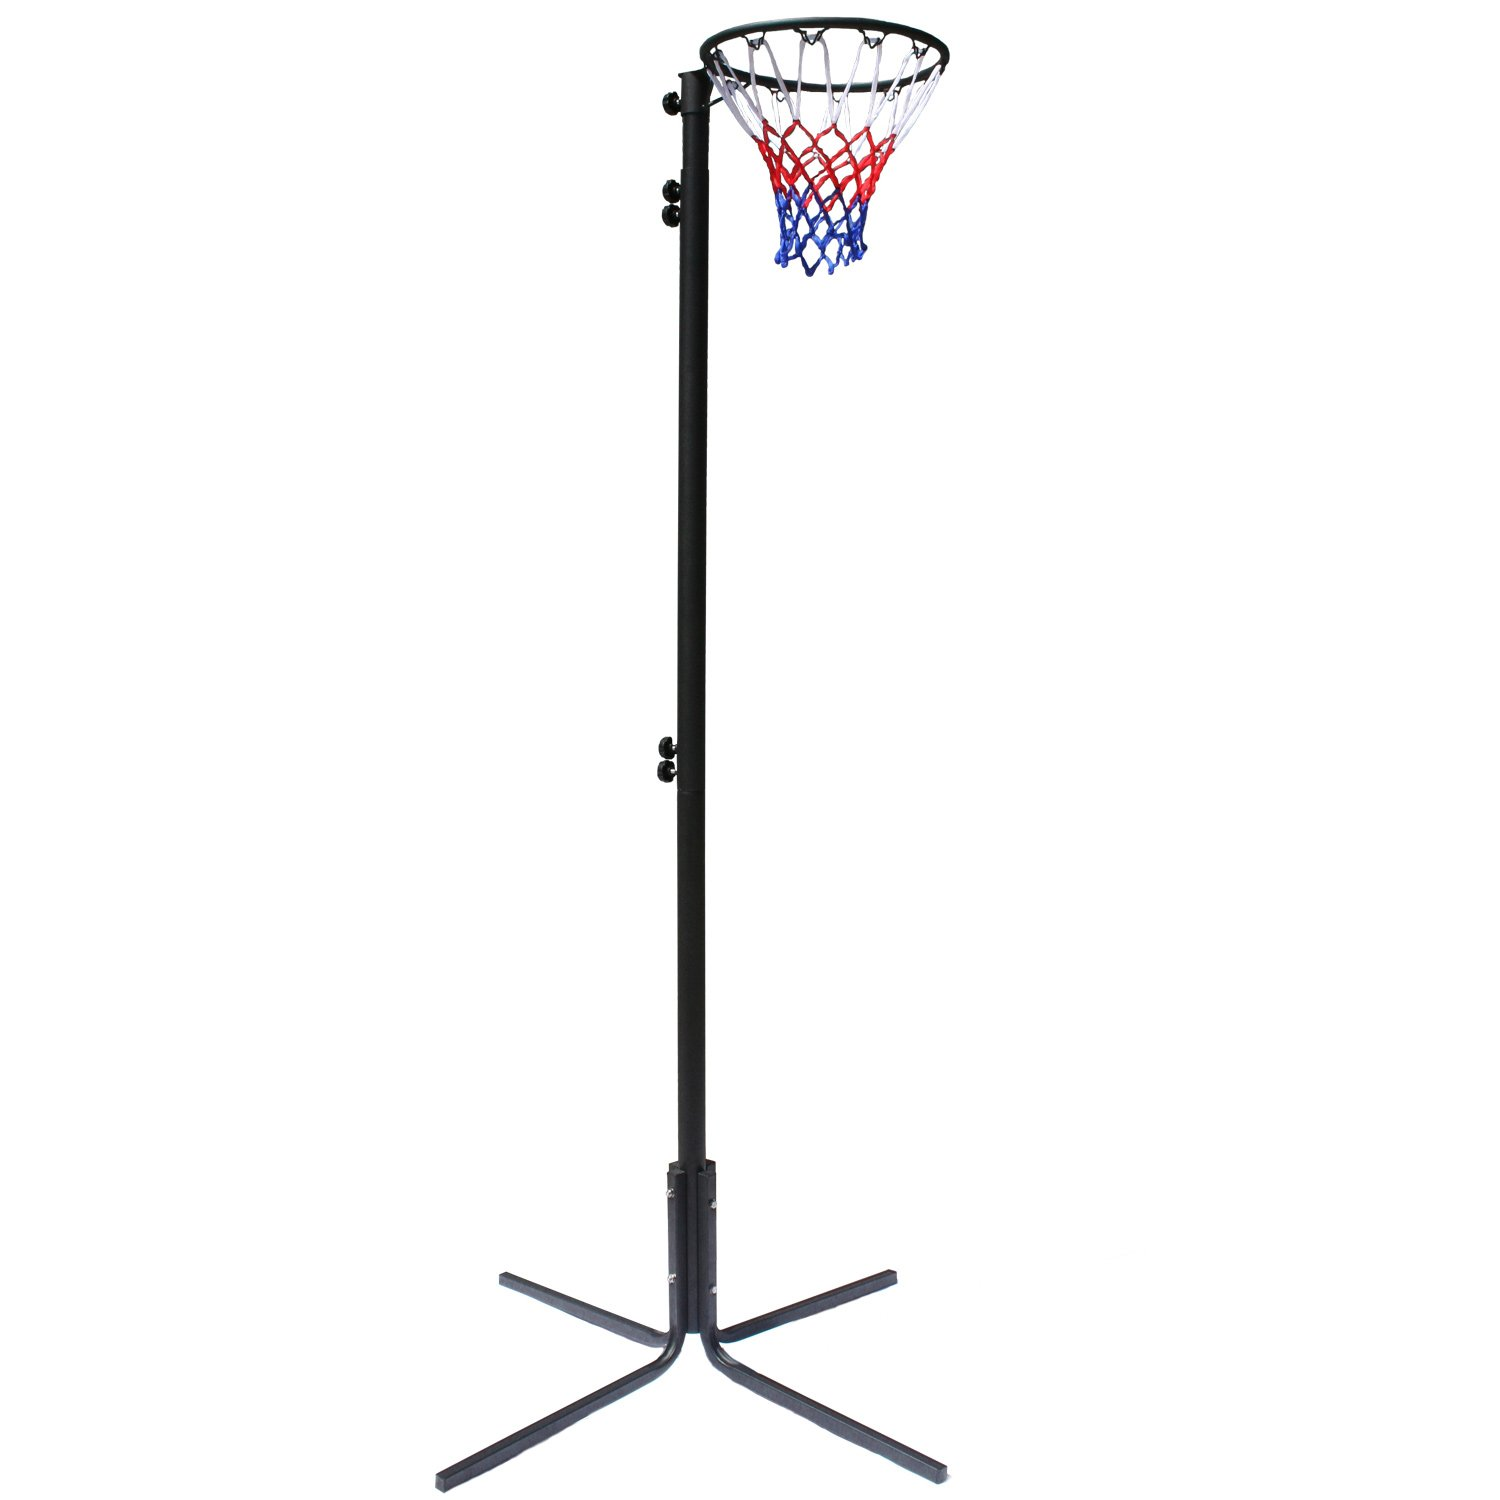 Bee-Ball Freestanding Netball Post, Height Adjustable from 2.25 Meters To 3.05 Meters (7' To 10') Big Game Hunters